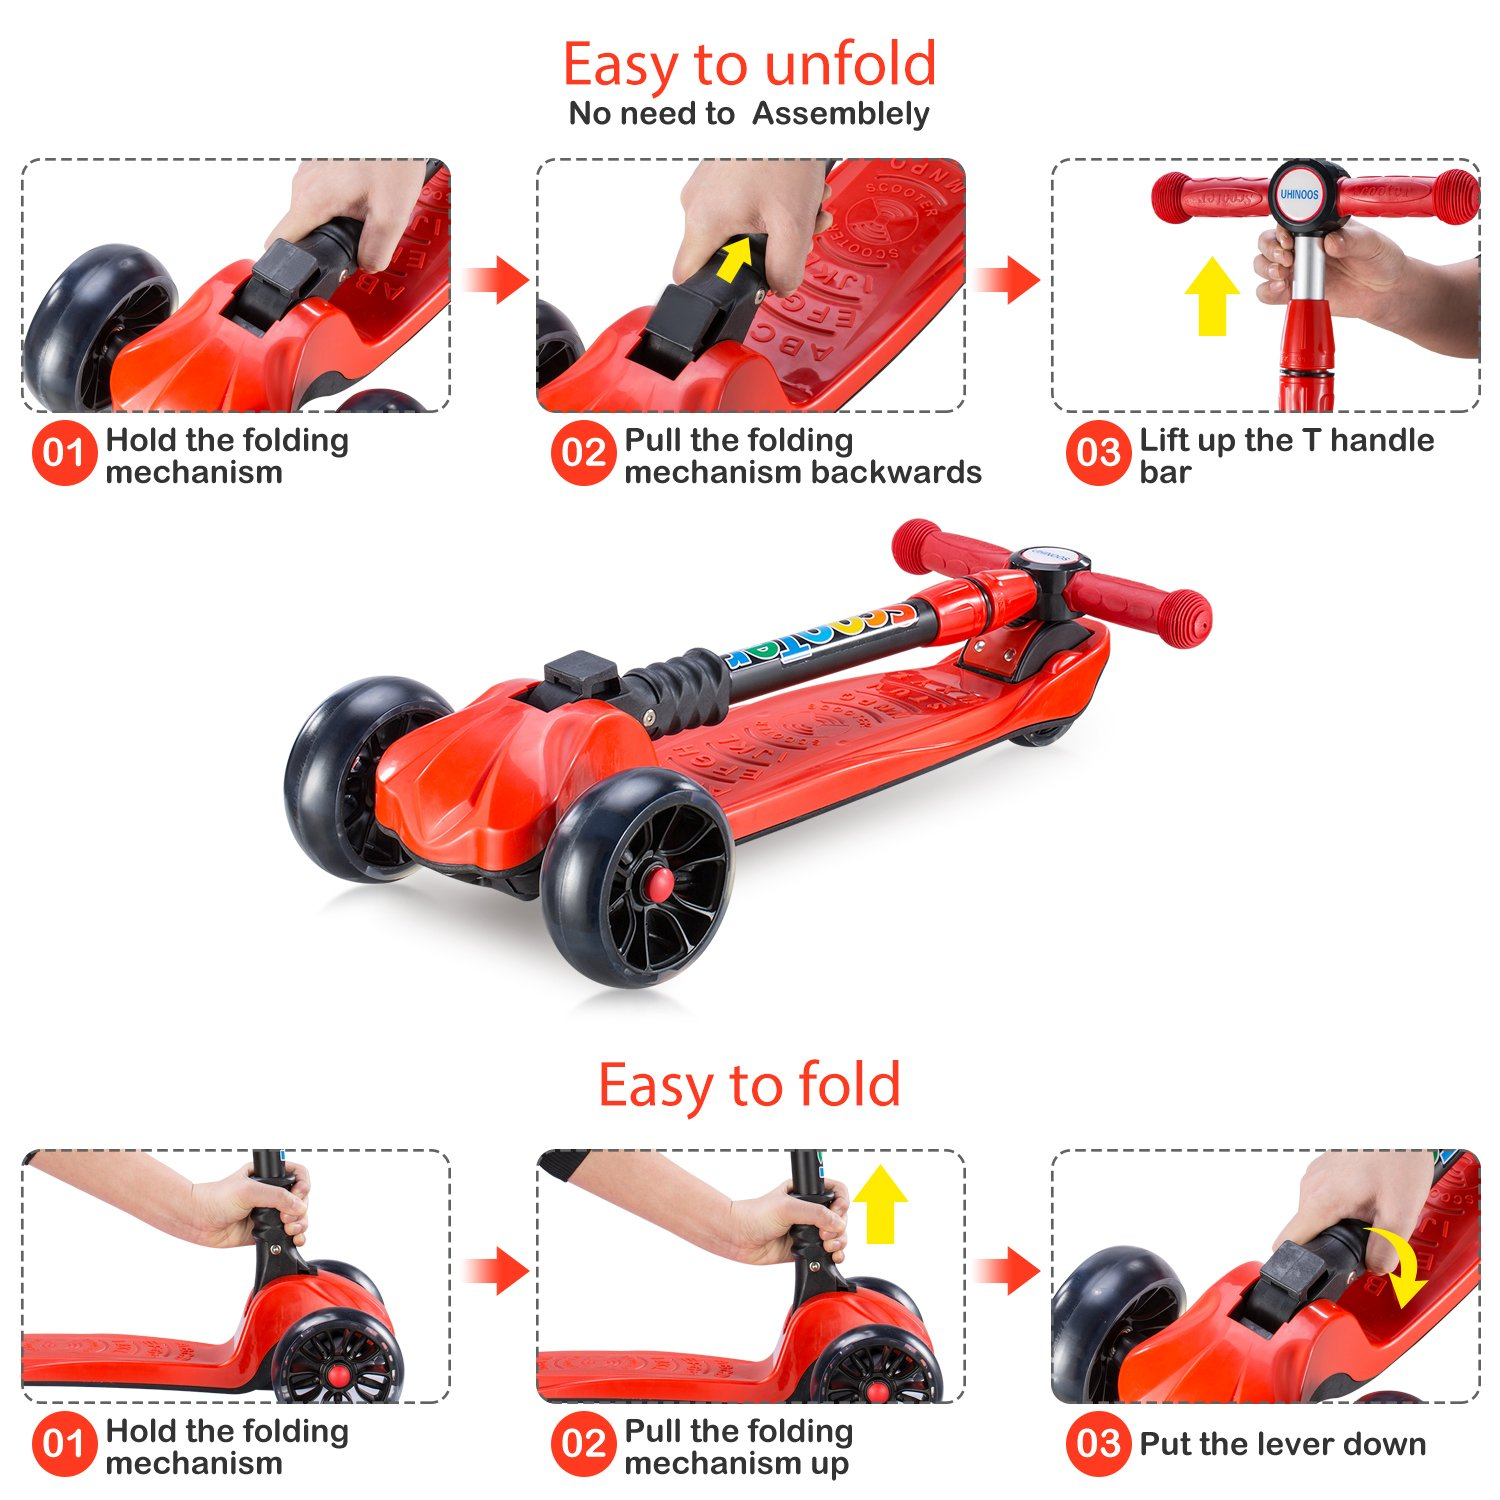 UHINOOS Kick Scooter for Kids/&Toddlers-4 Adjustable Height 3 Wheel Scooters for Kids-Flashing Wheels Foldable Kids Scooter Best Gifts for Children from 3-12 Years Red UHINOOS-18